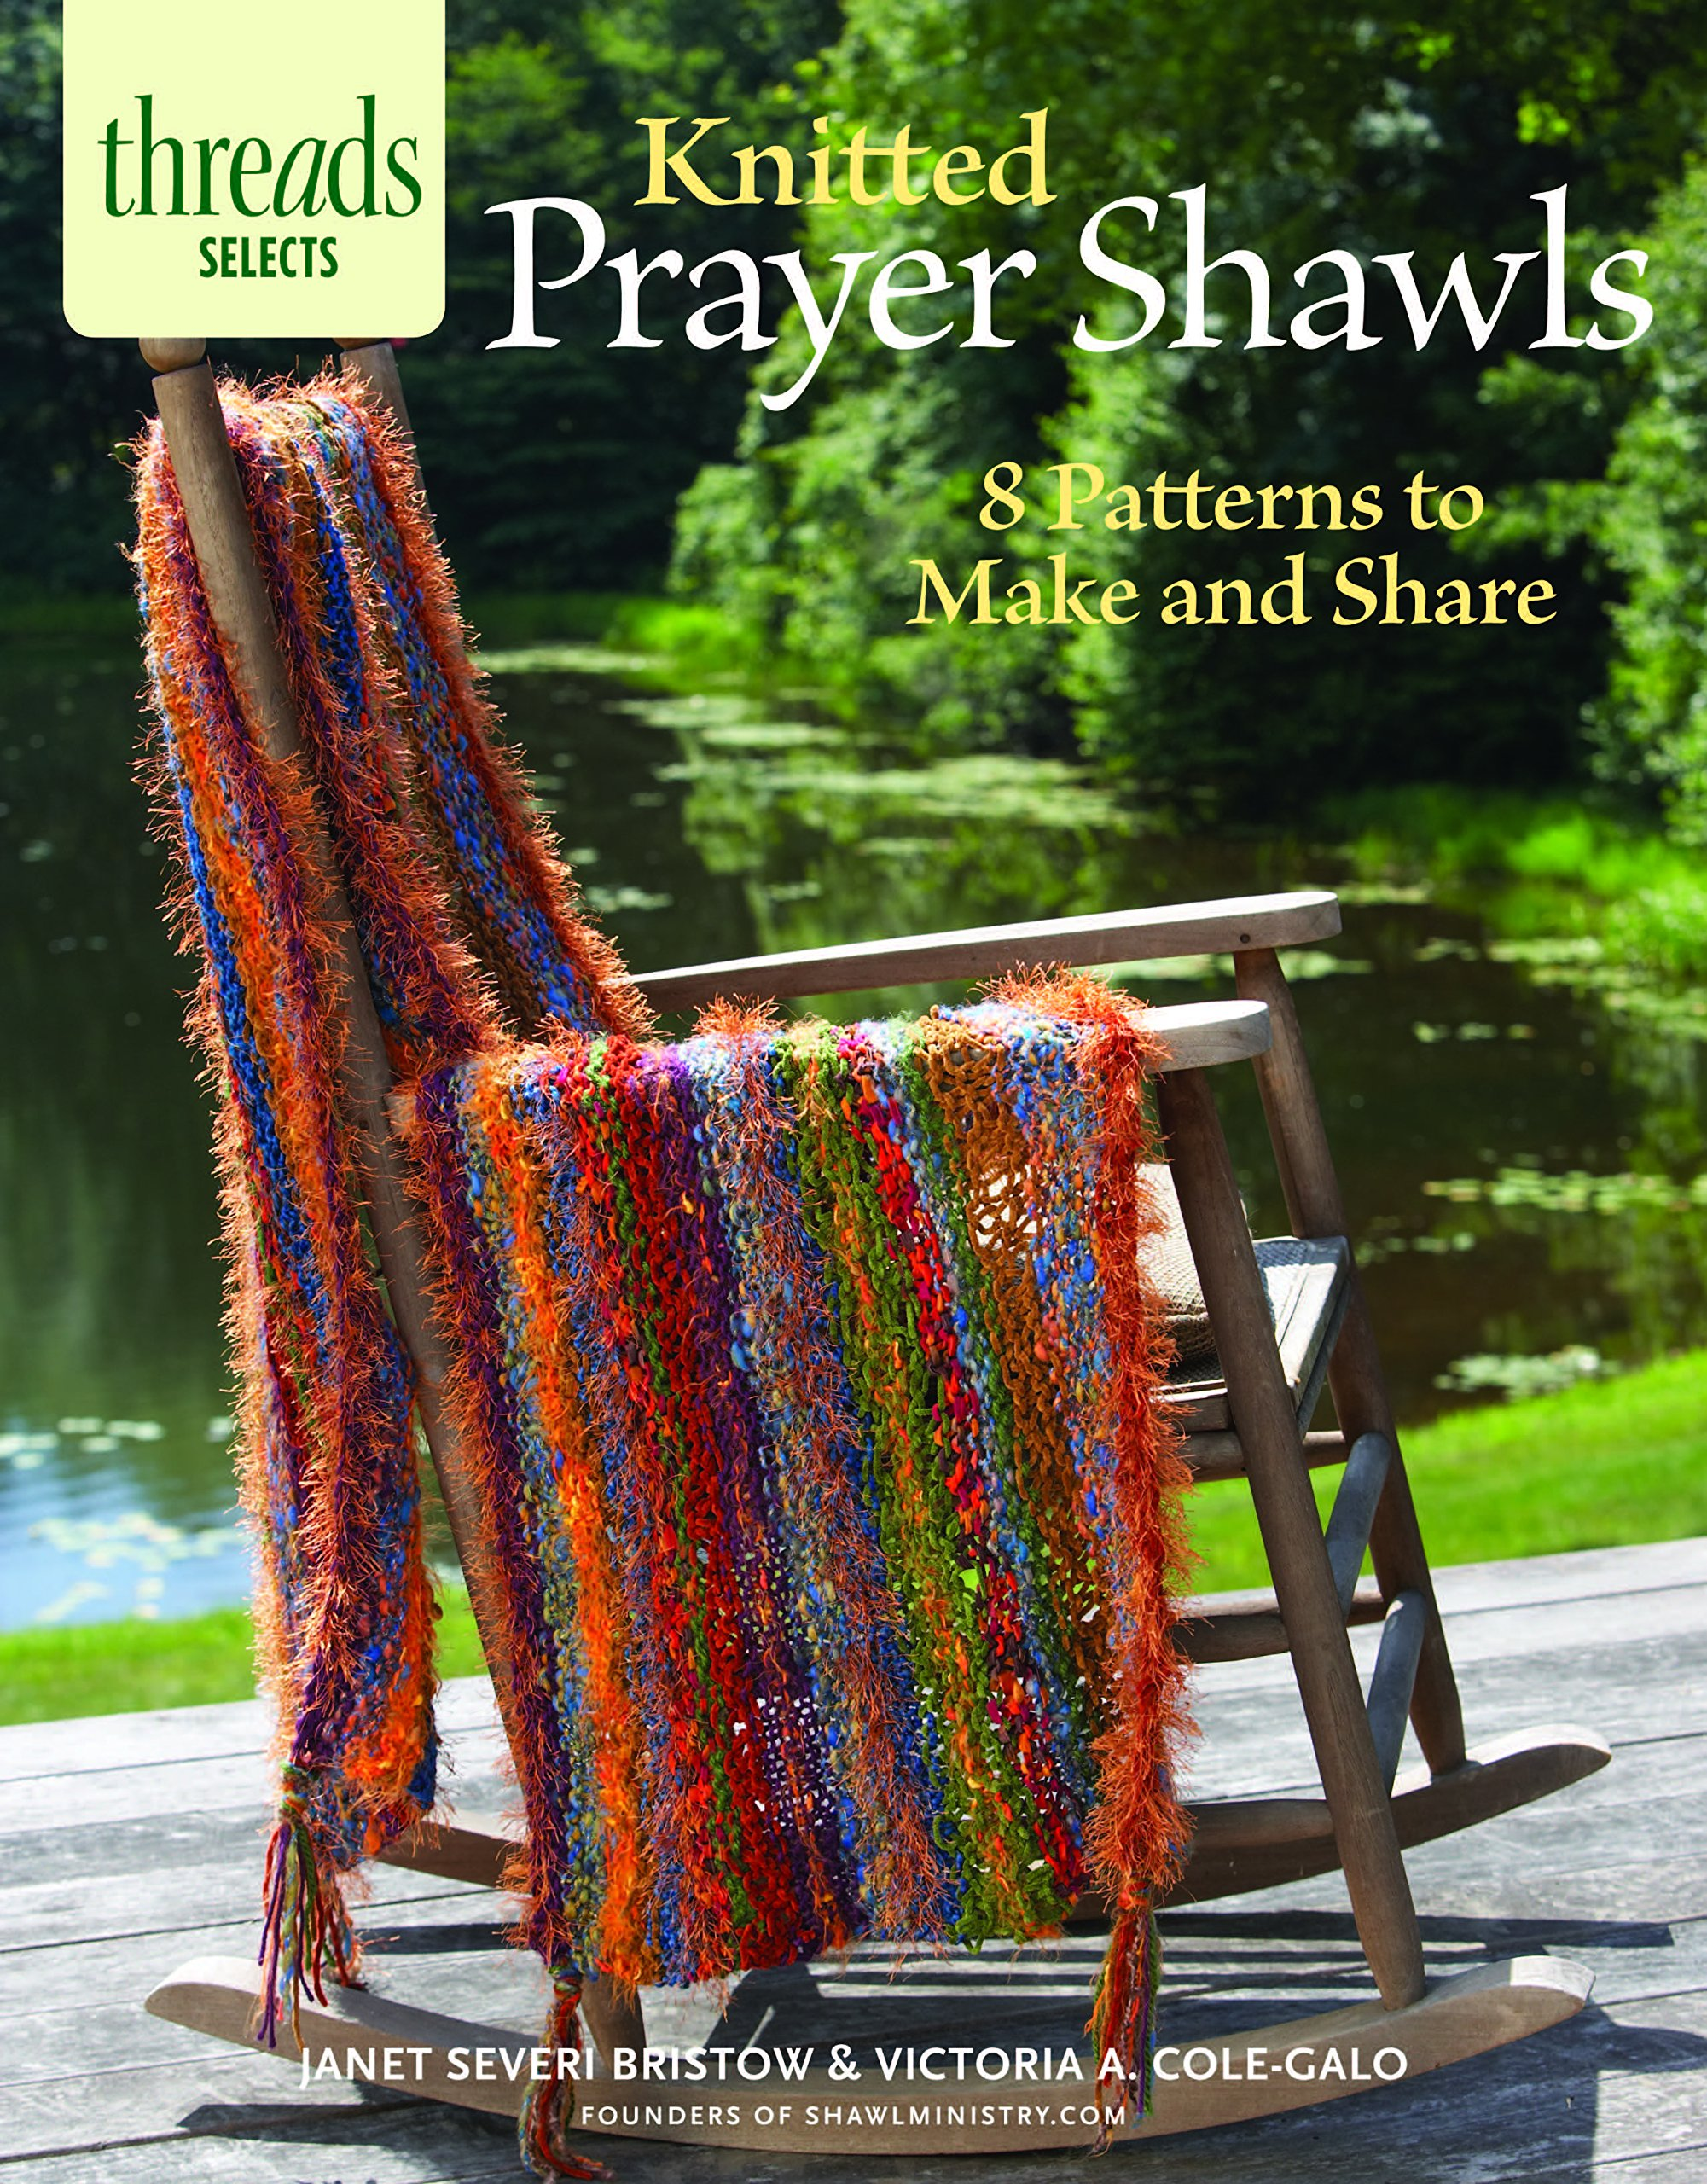 Knitted Prayer Shawls patterns Threads